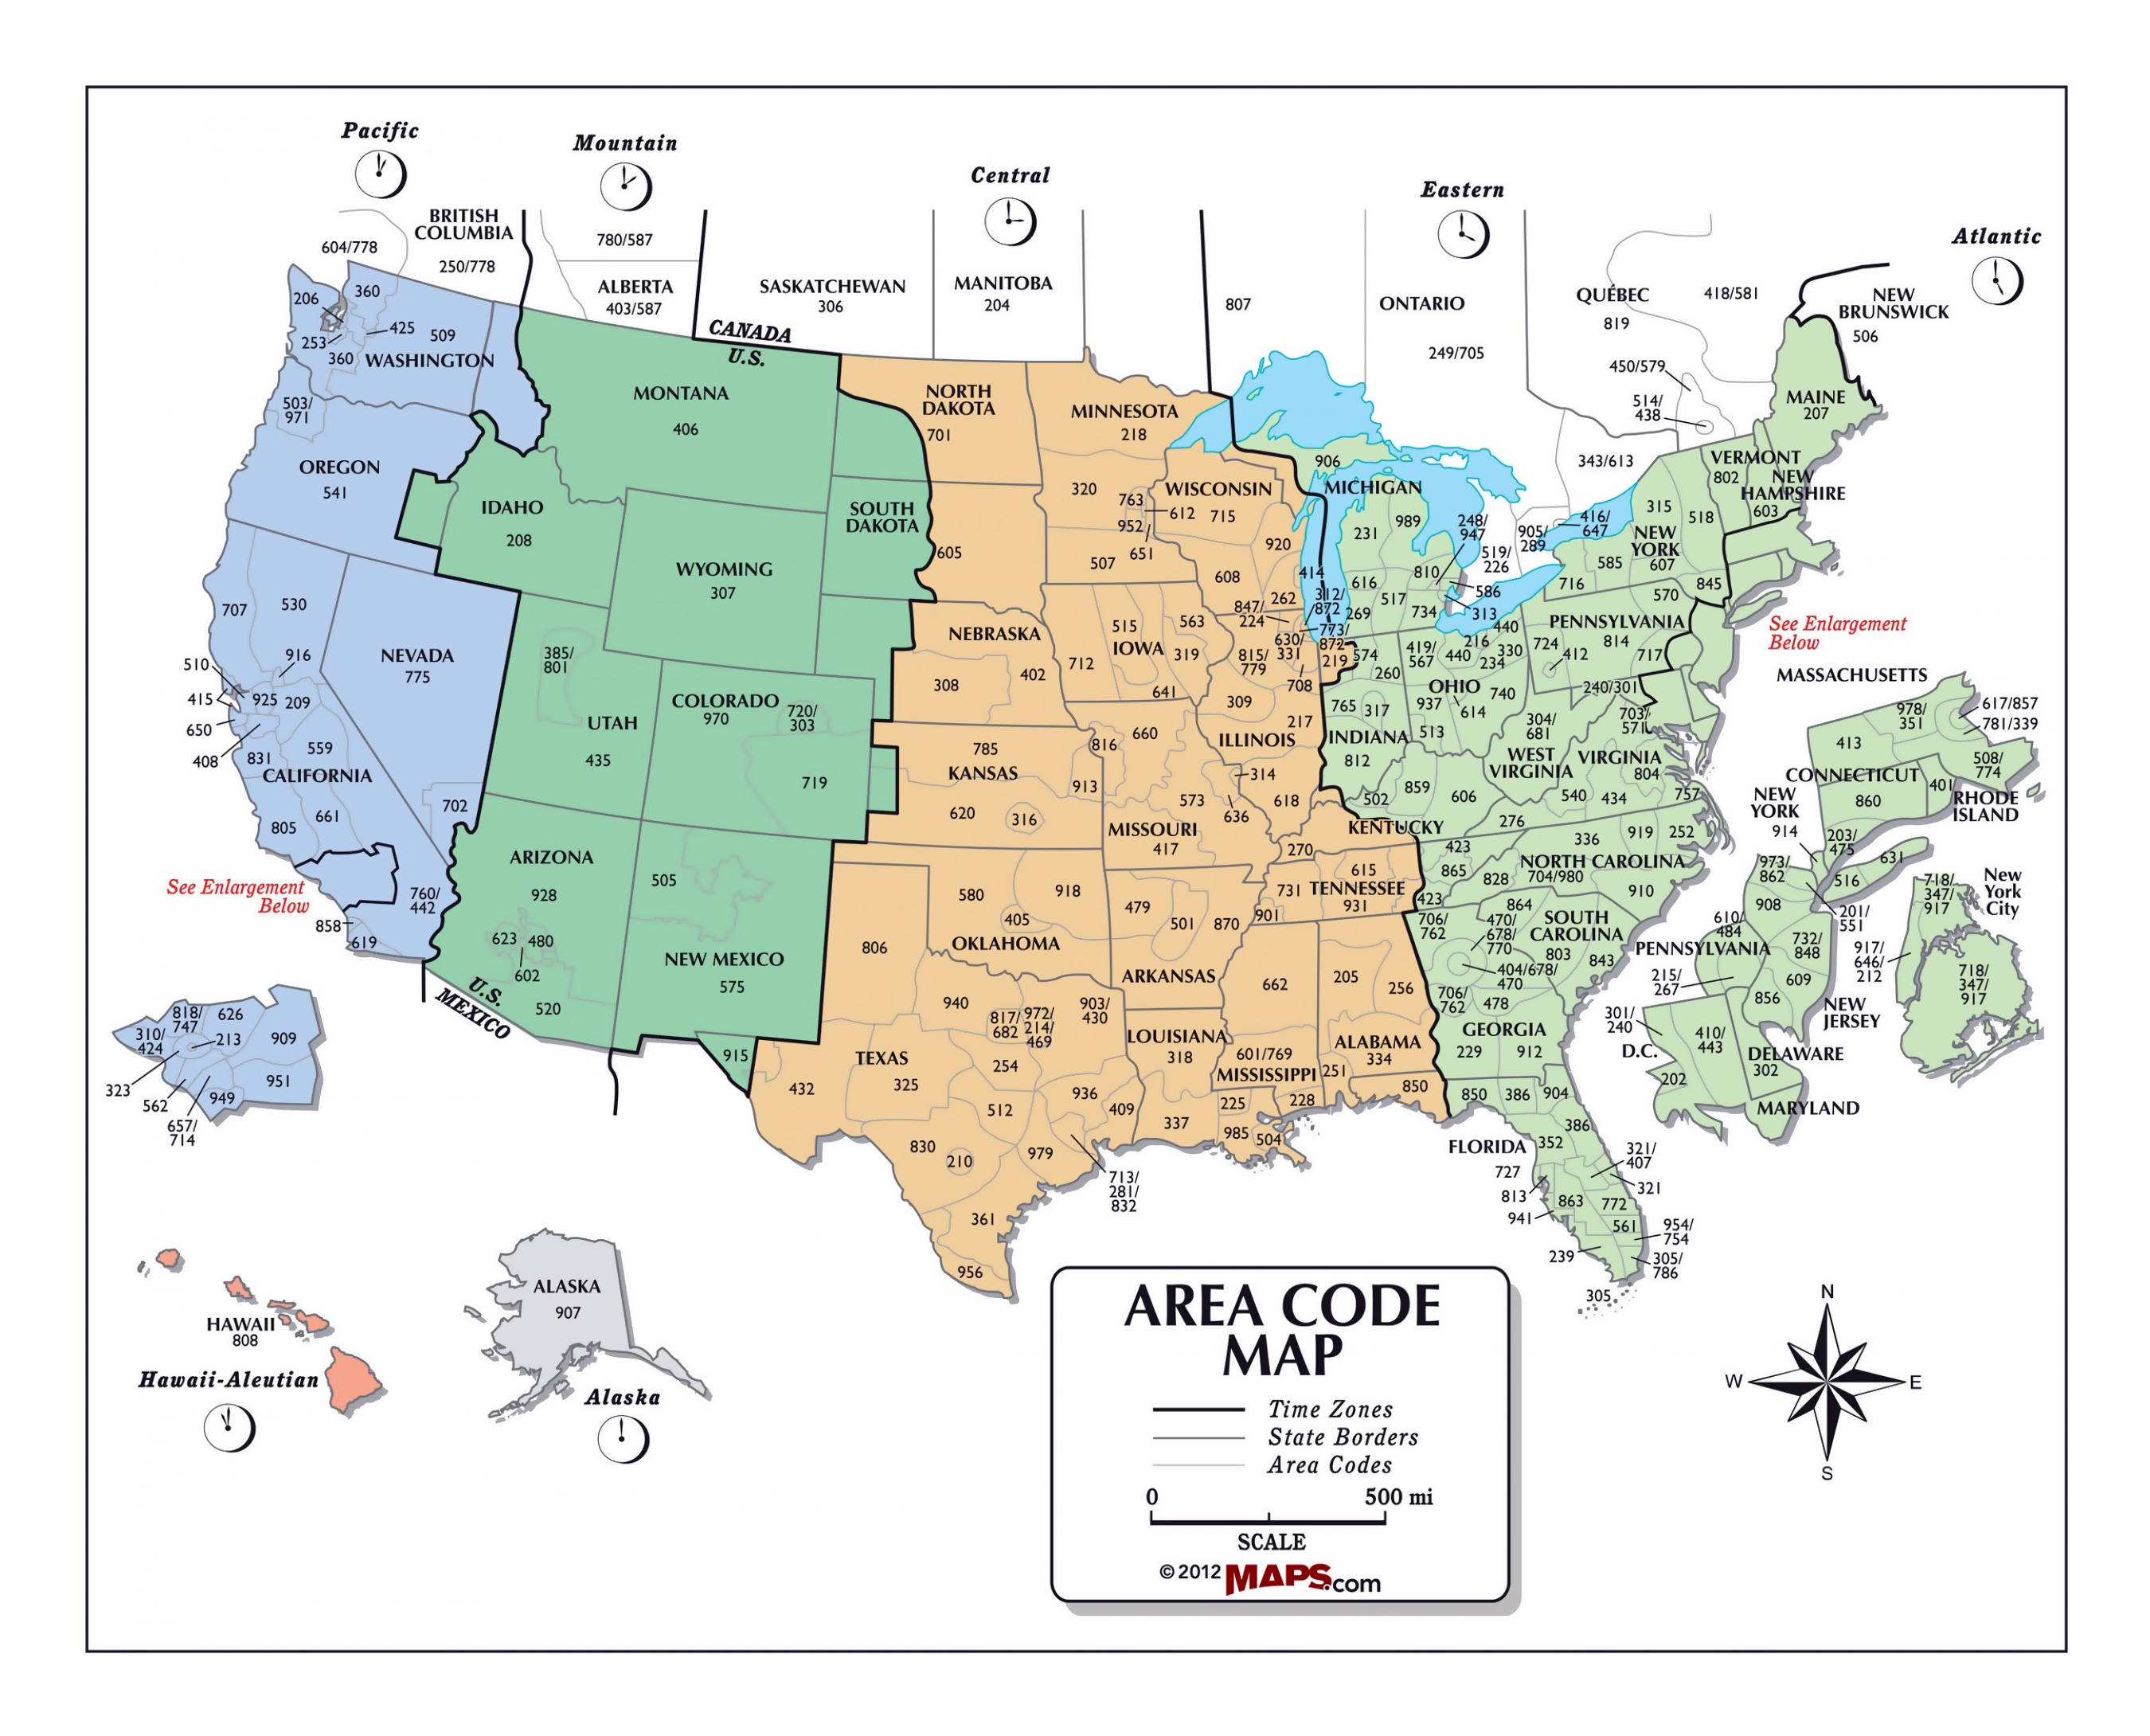 Large Area Code Map Of The USA USA United States Of America - Area codes usa